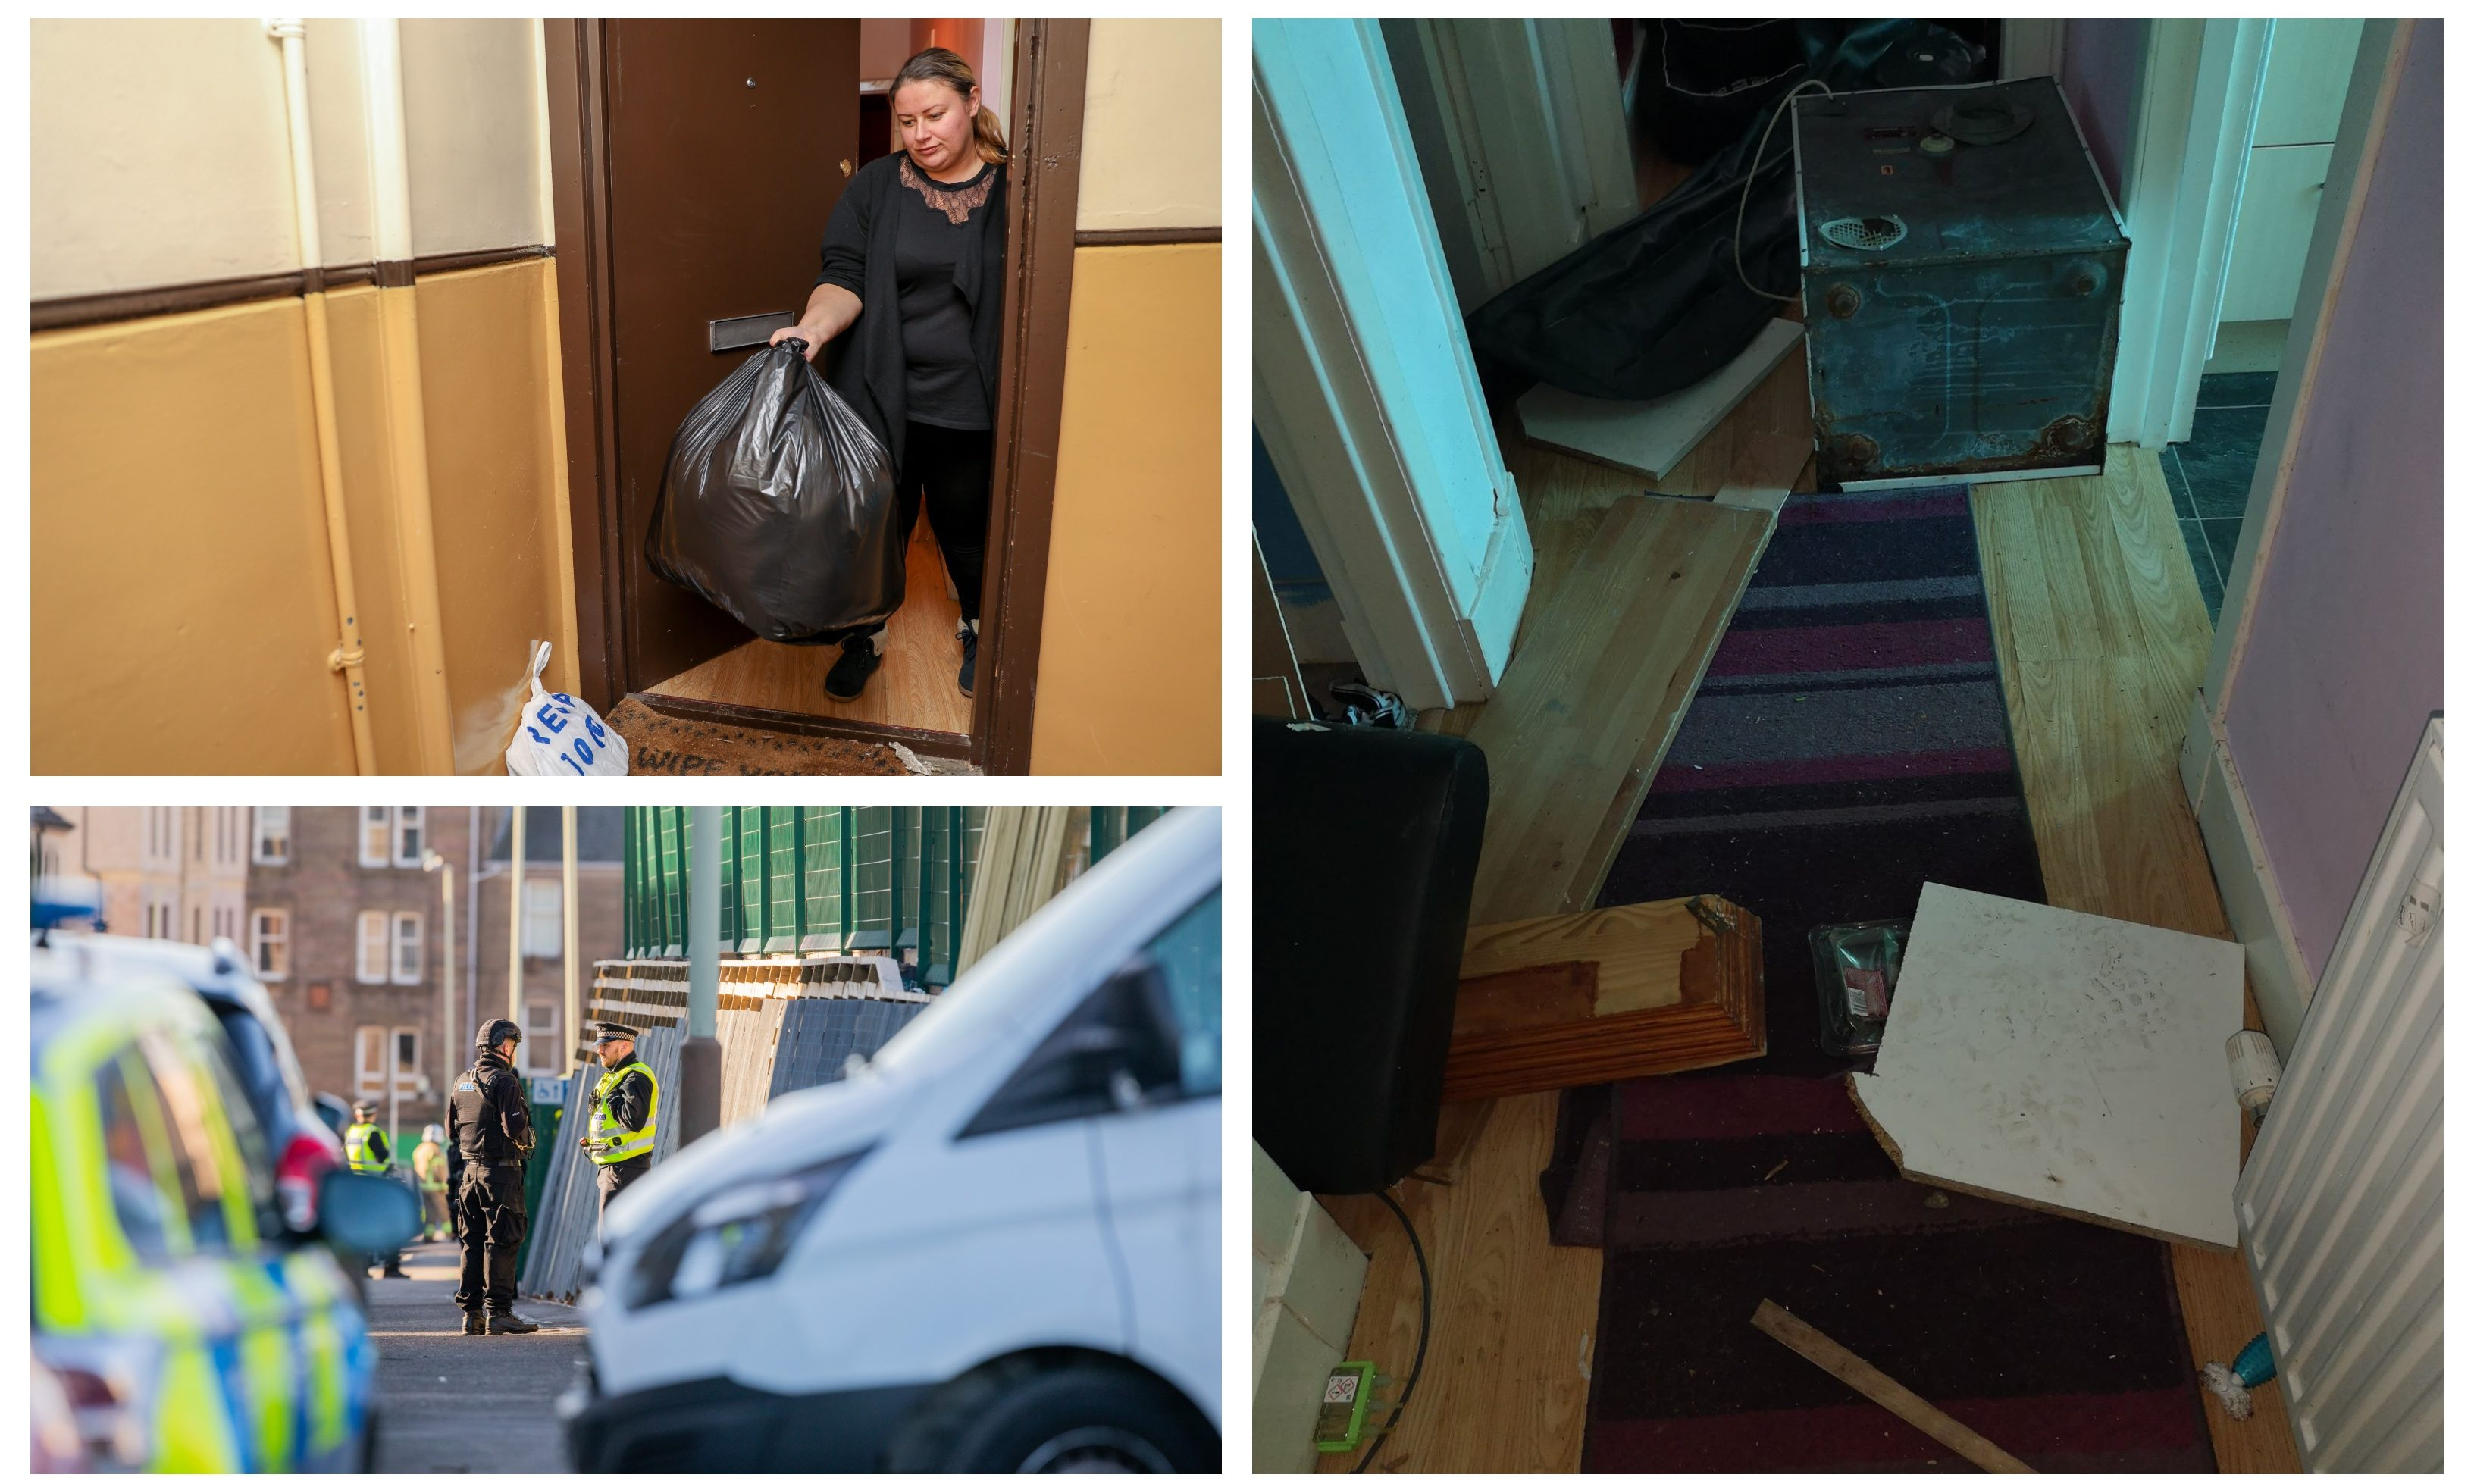 Patrycja Wieczorek with a bin bag full of debris she has had to throw out after her home was trashed. Bottom left: Emergency services at the scene of the incident in the Hilltown.